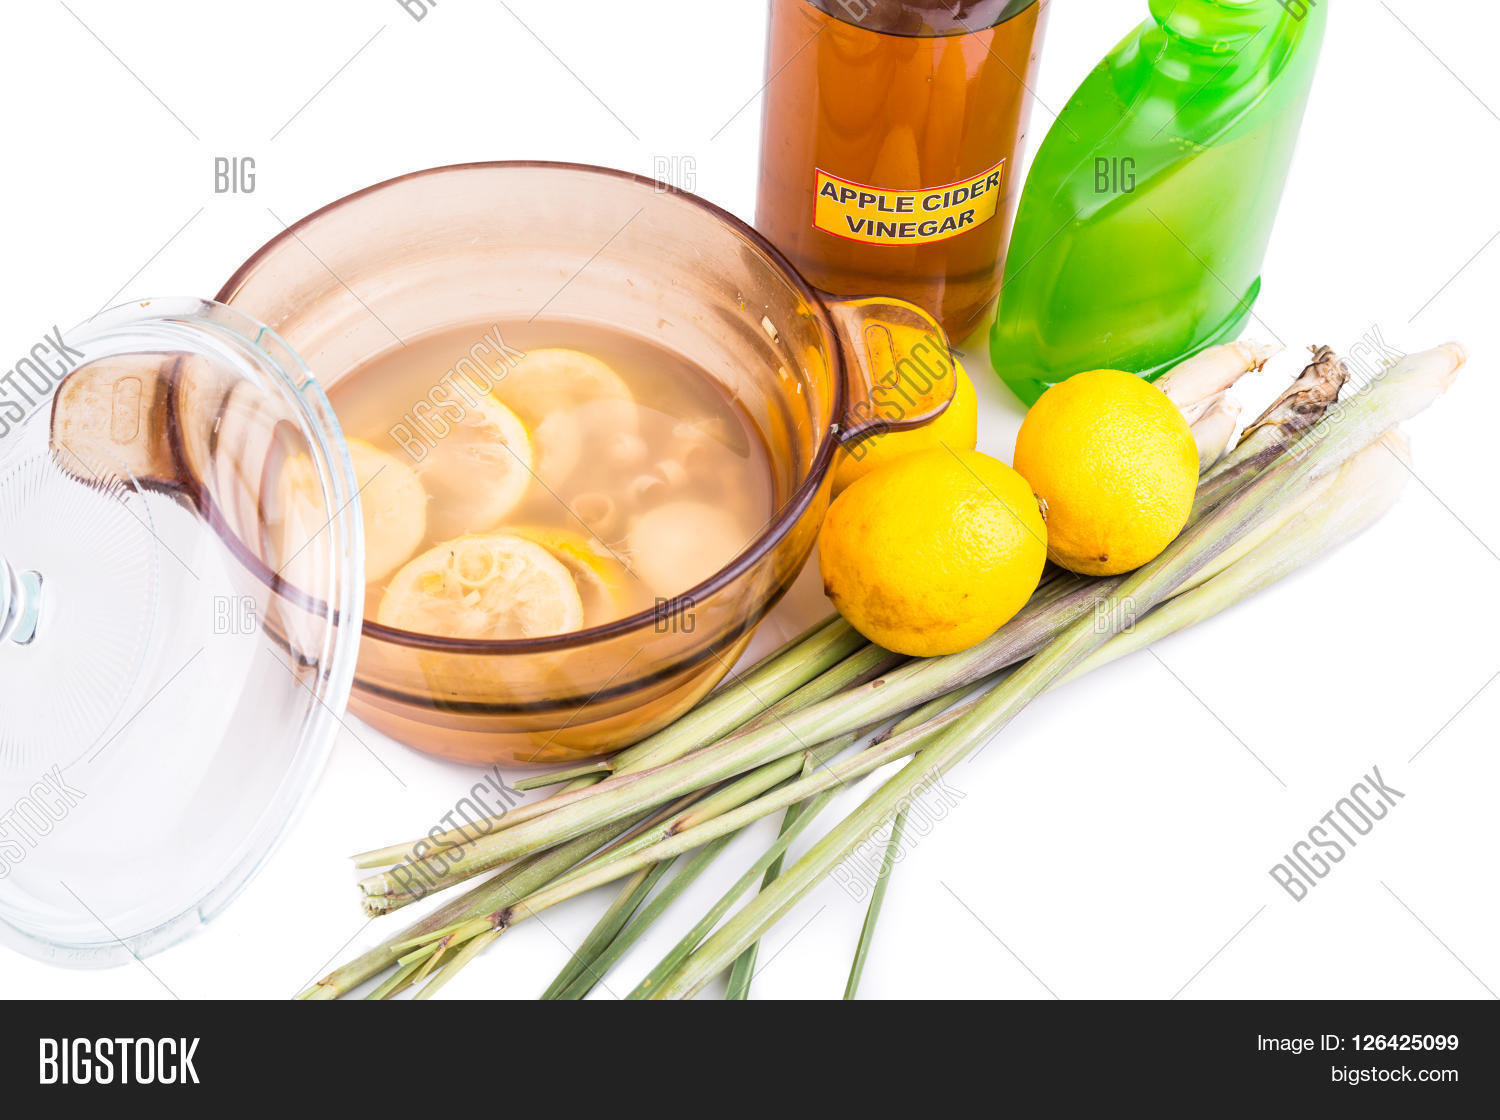 Apple Cider Vinegar, Image & Photo (Free Trial) | Bigstock